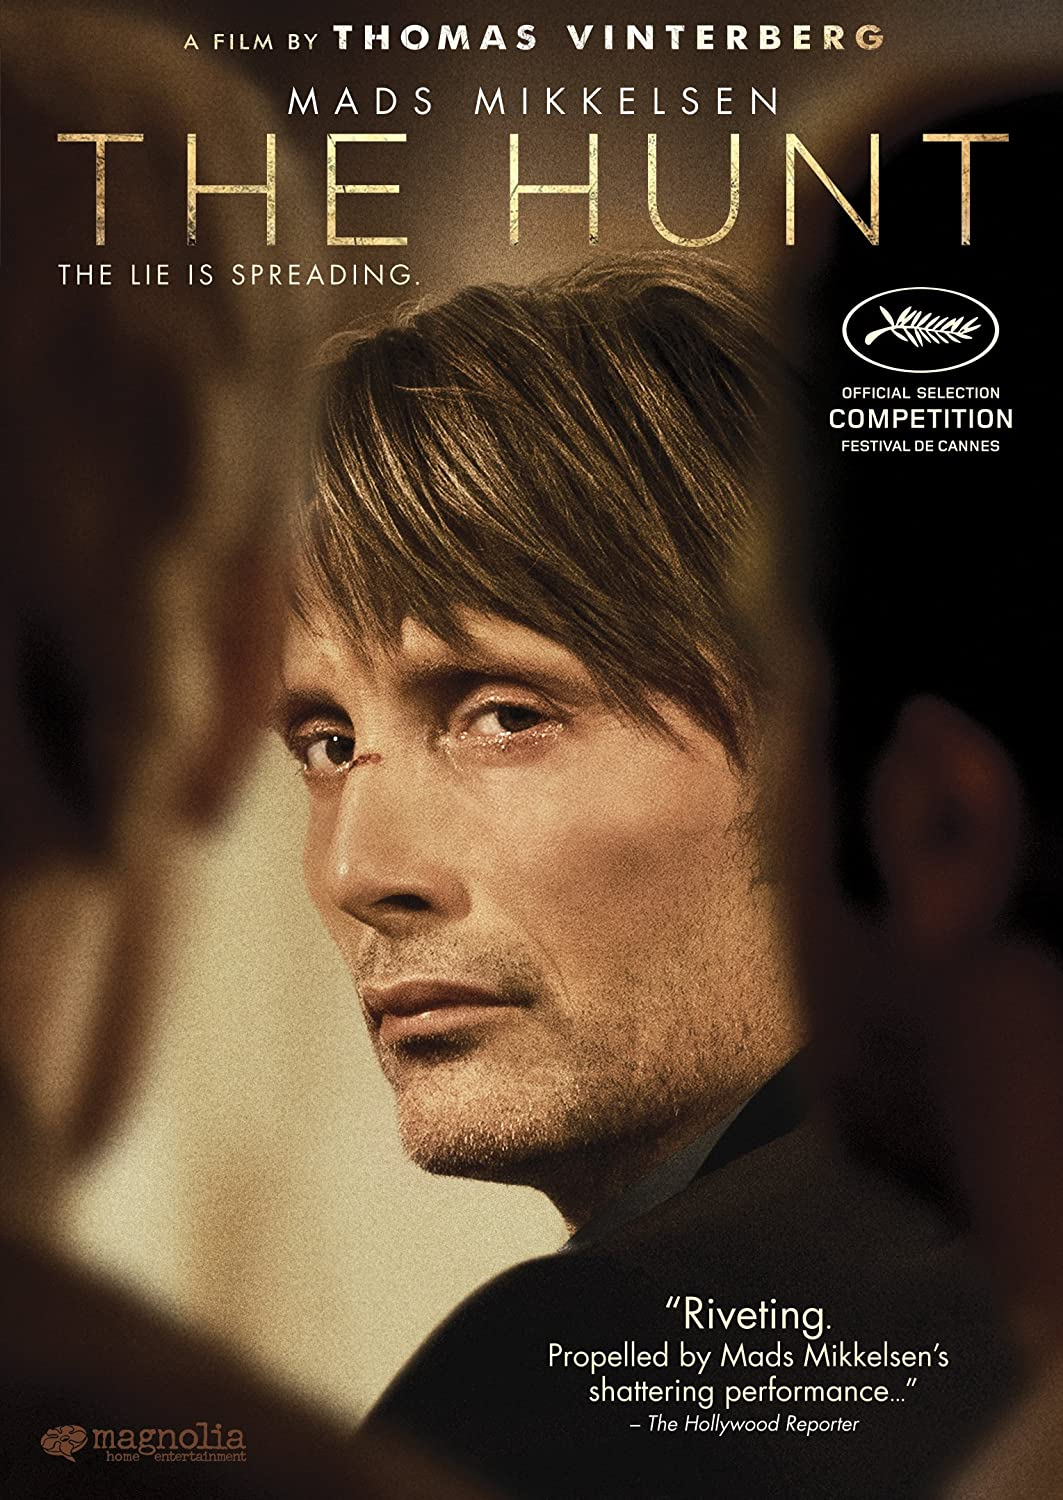 com hunt mads mikkelsen thomas vinterberg movies tv